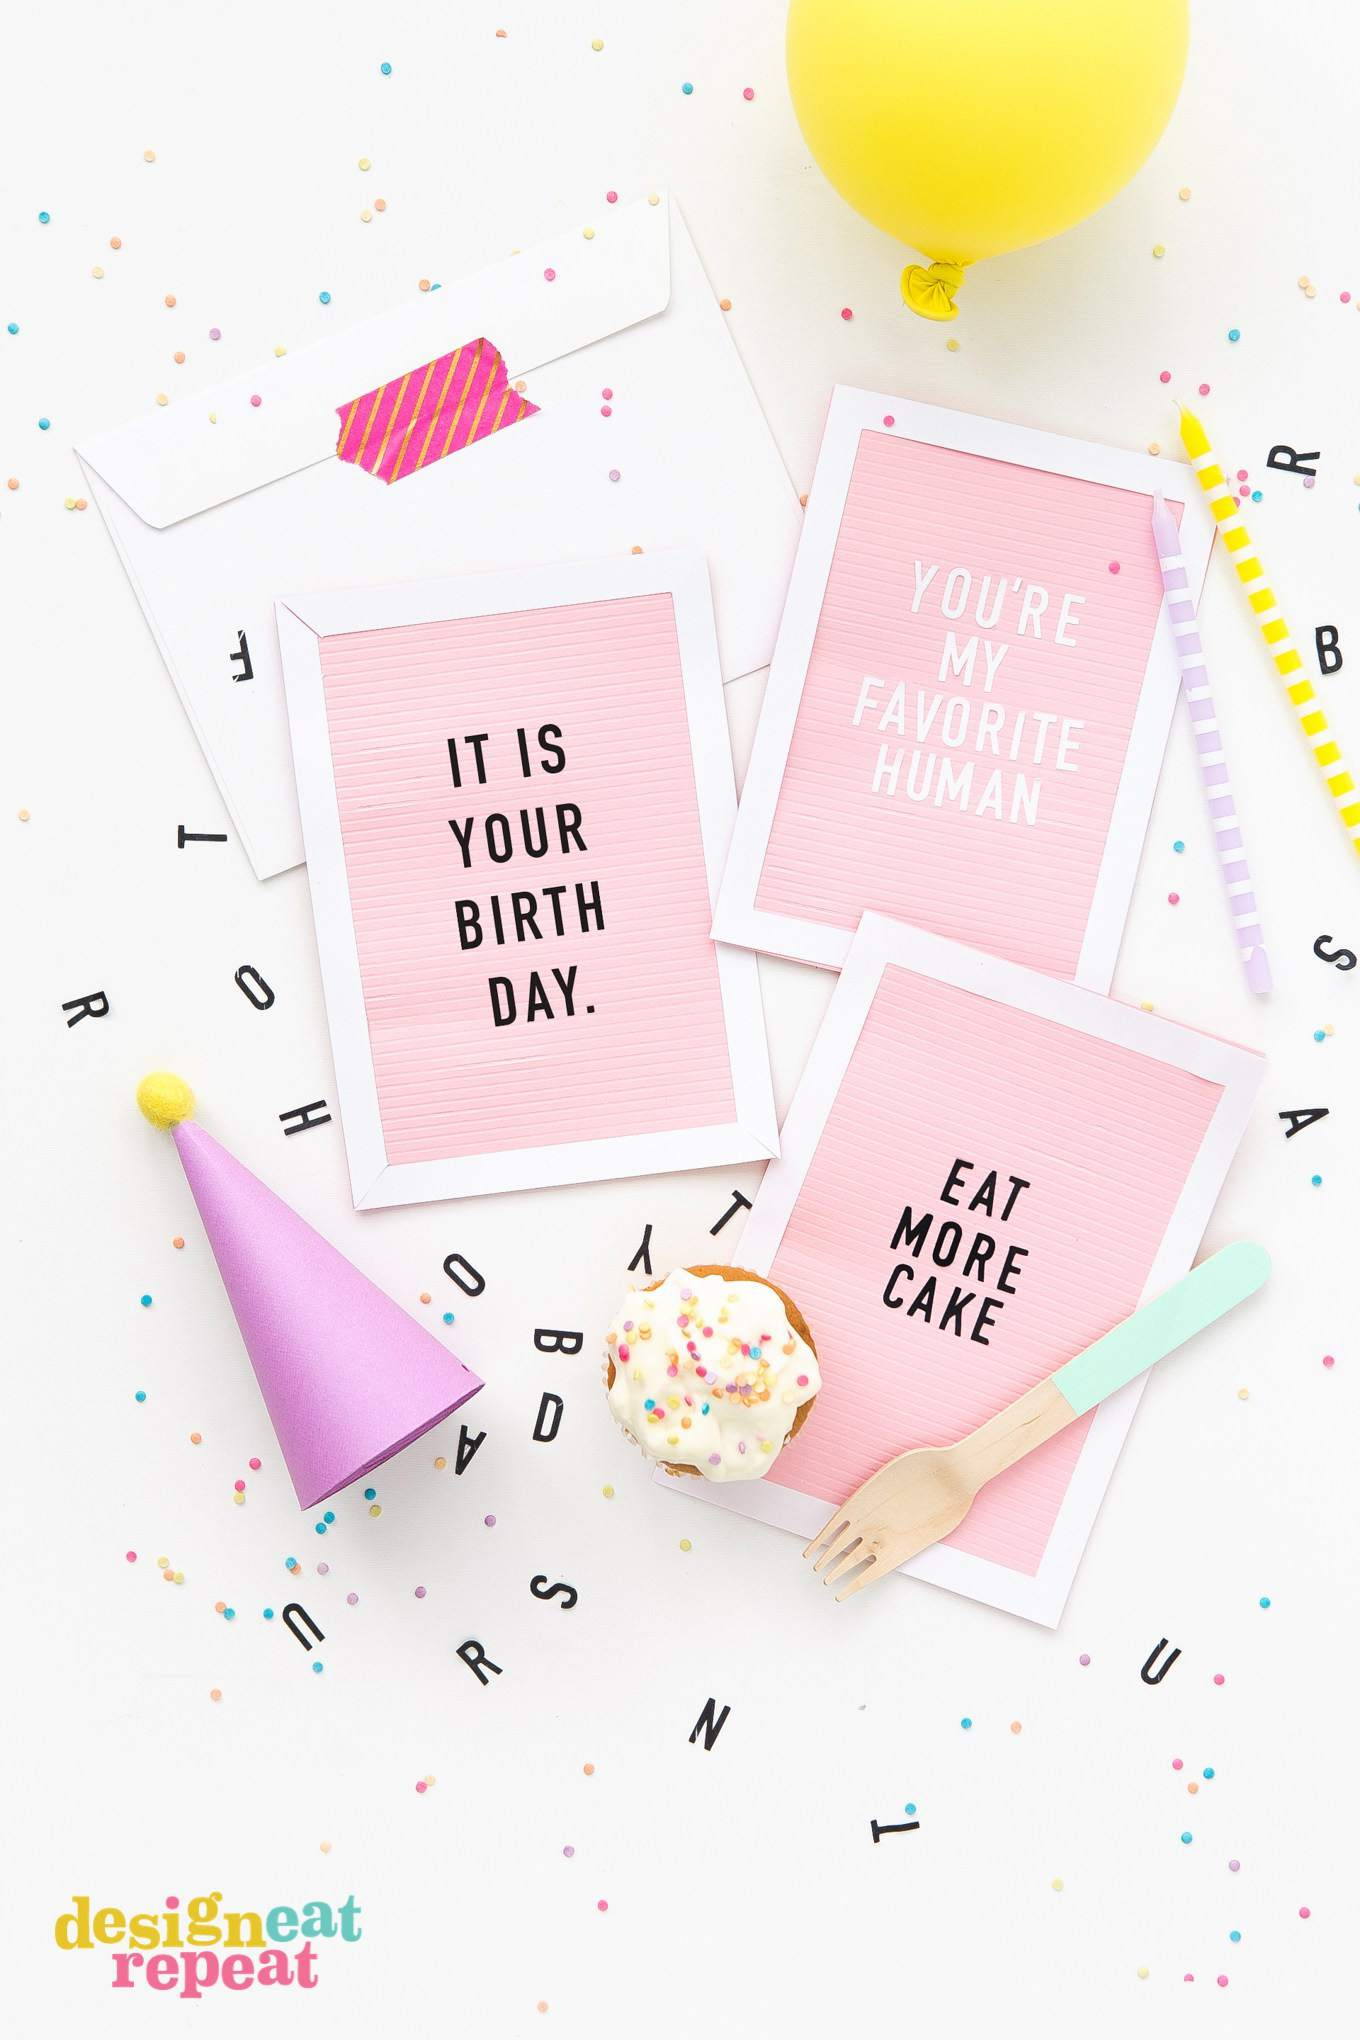 Get Inspiration From 25 Of The Best Diy Birthday Cards - Free Printable Birthday Cards For Your Best Friend